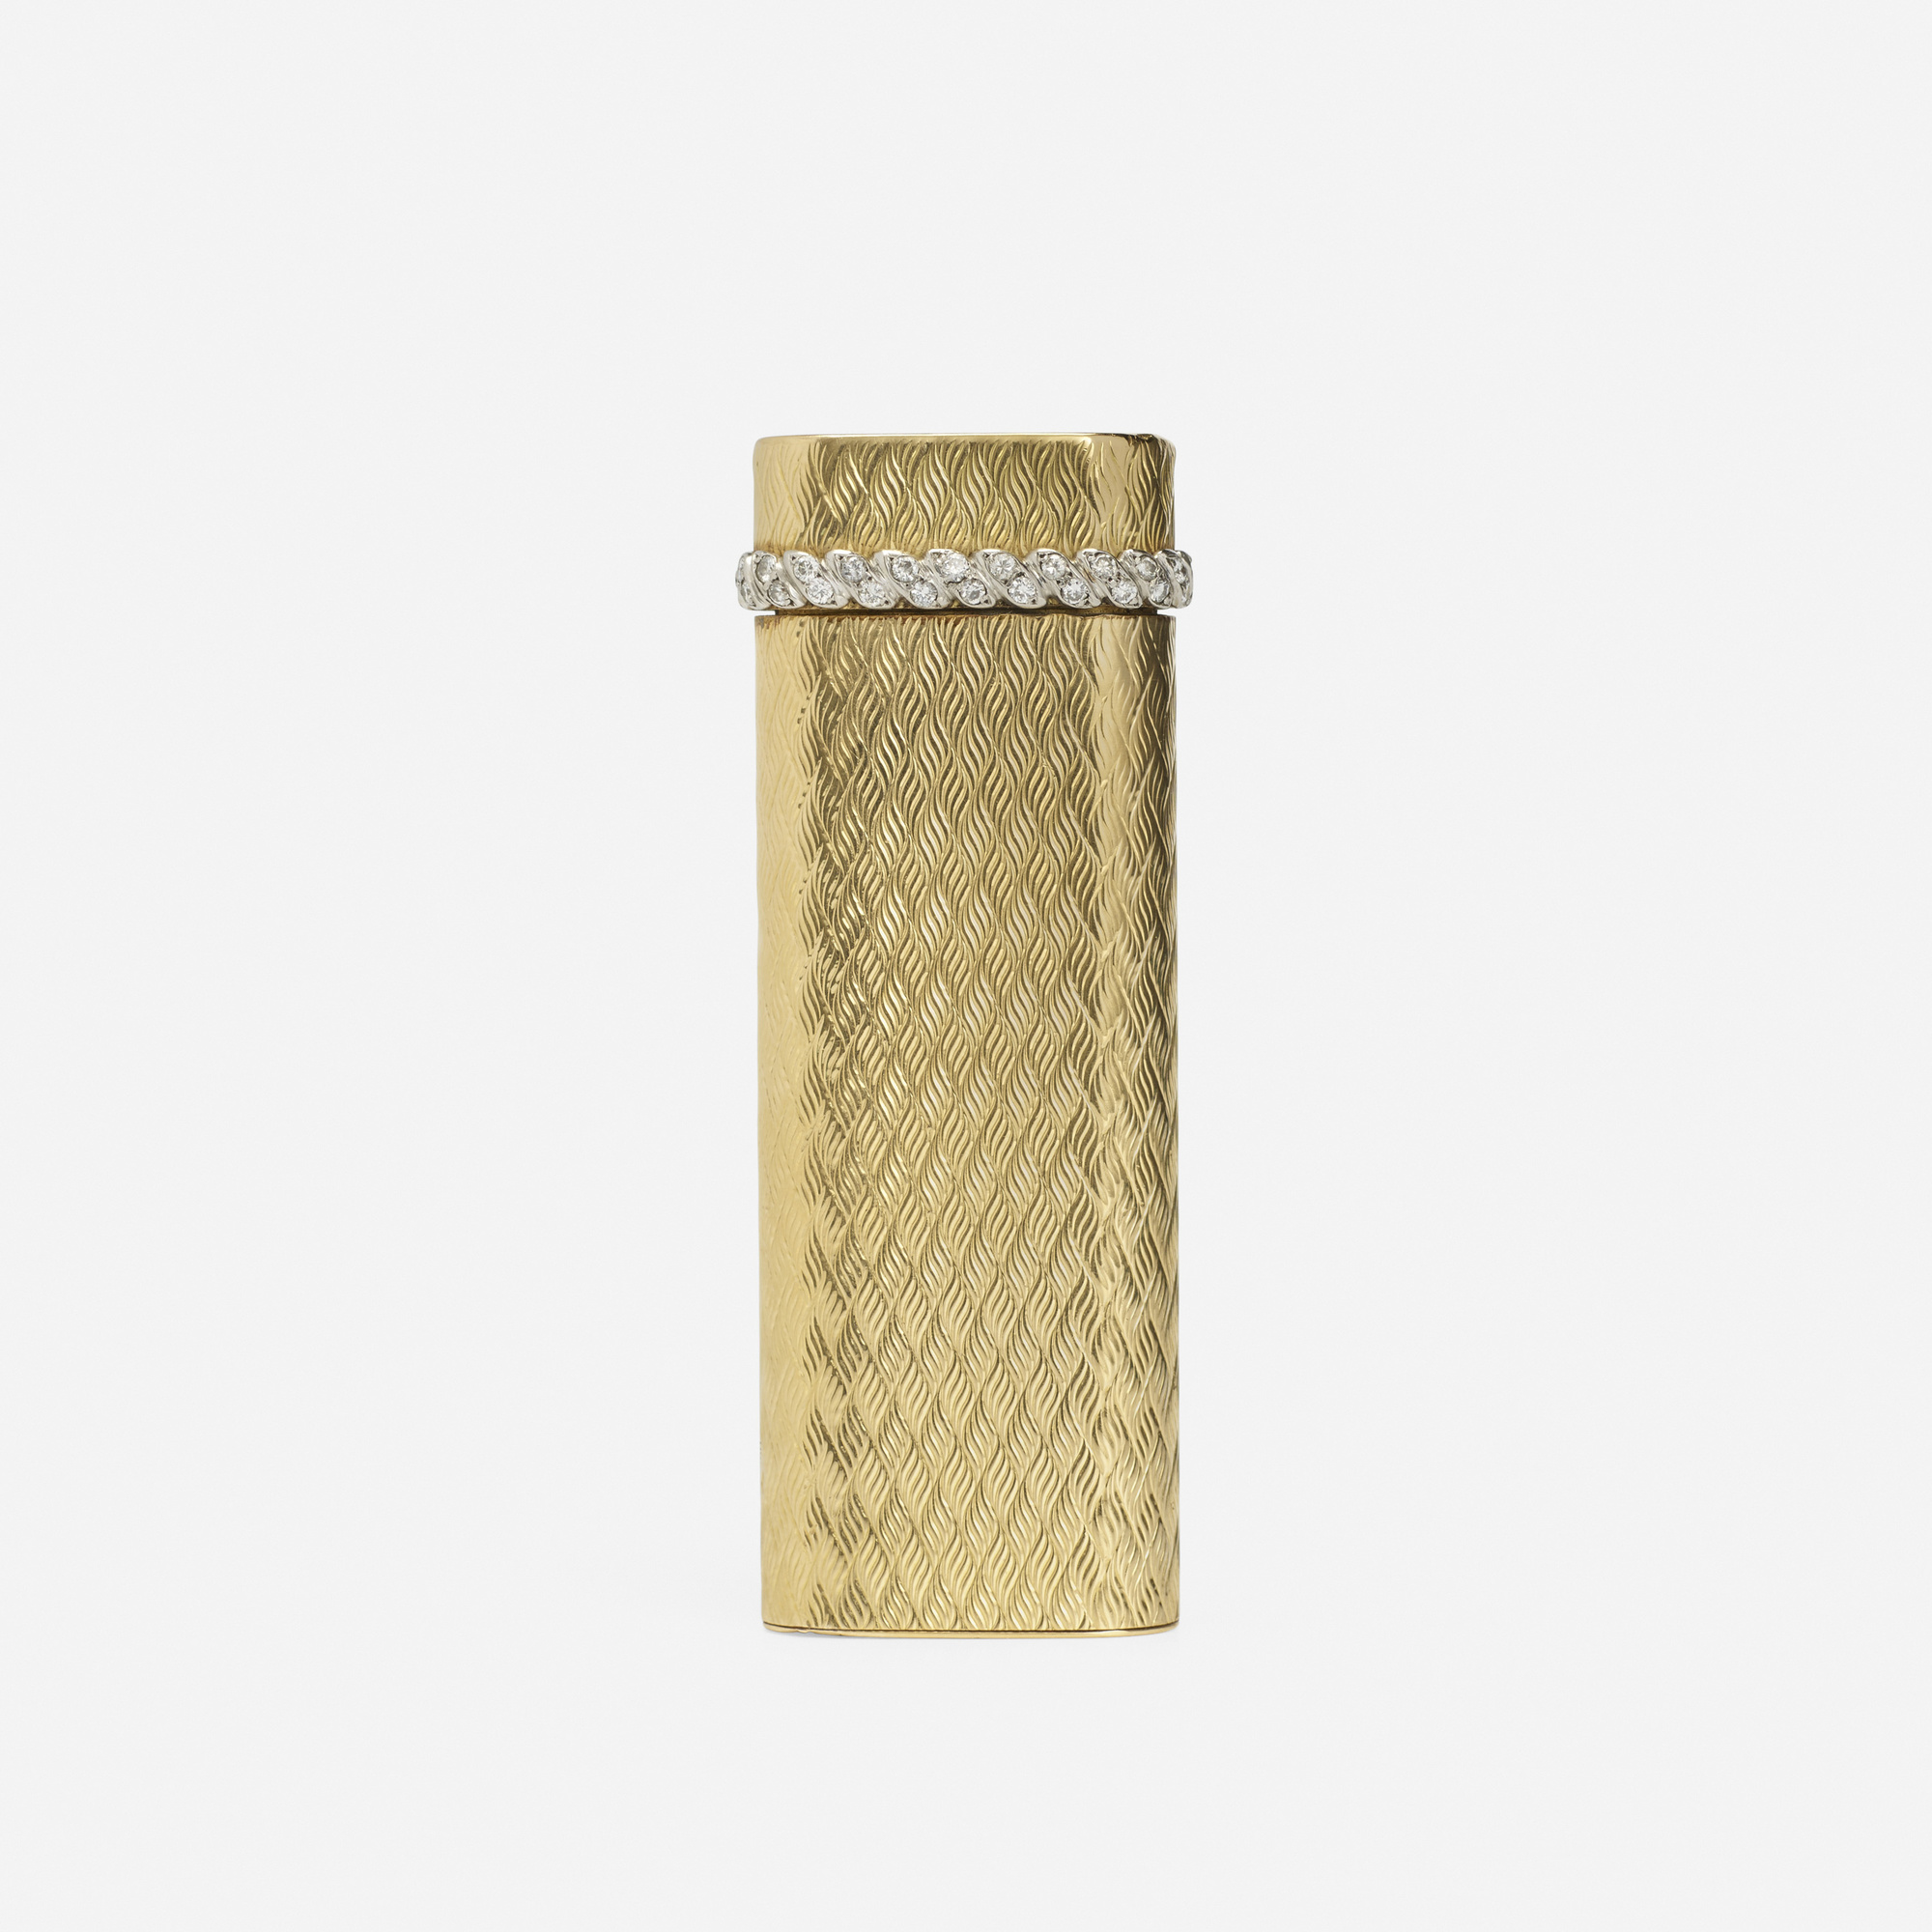 213: Cartier / A gold and diamond lighter (1 of 1)